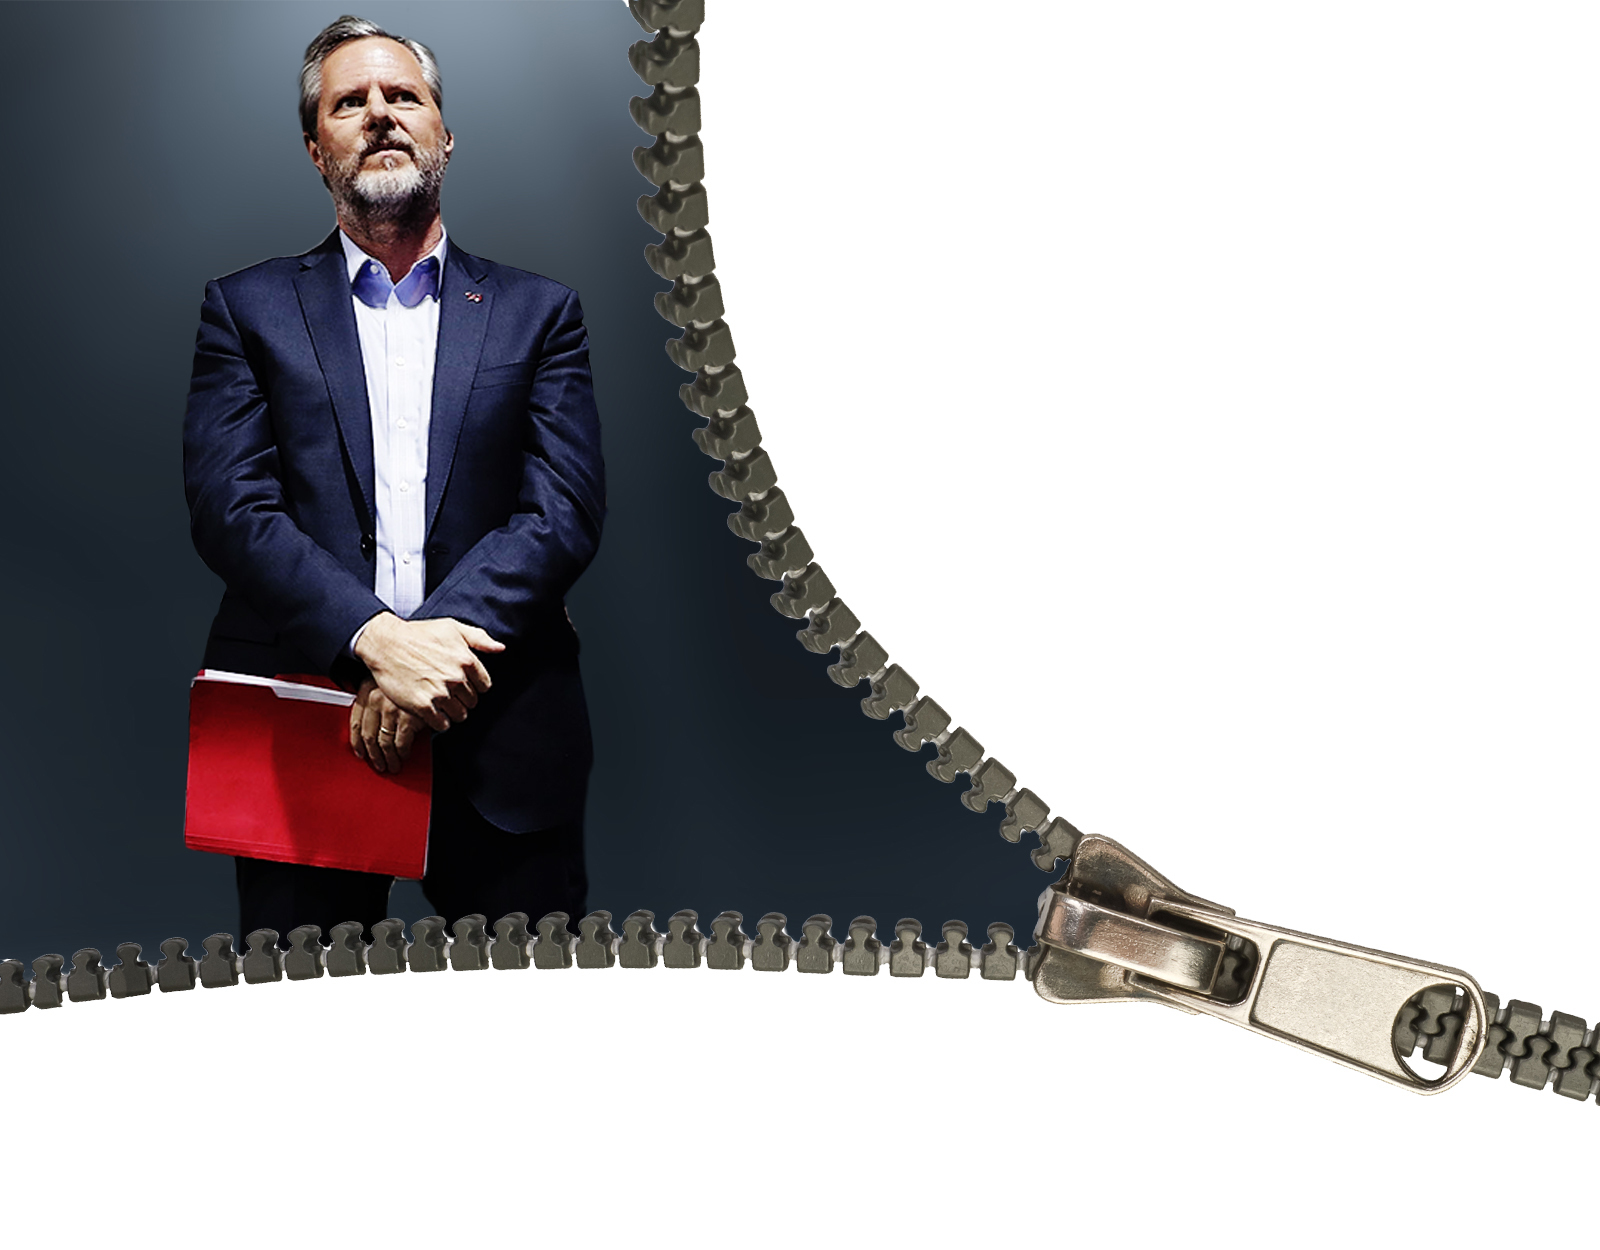 Jerry Falwell's Zipper Has Been Down for Years - The Bulwark